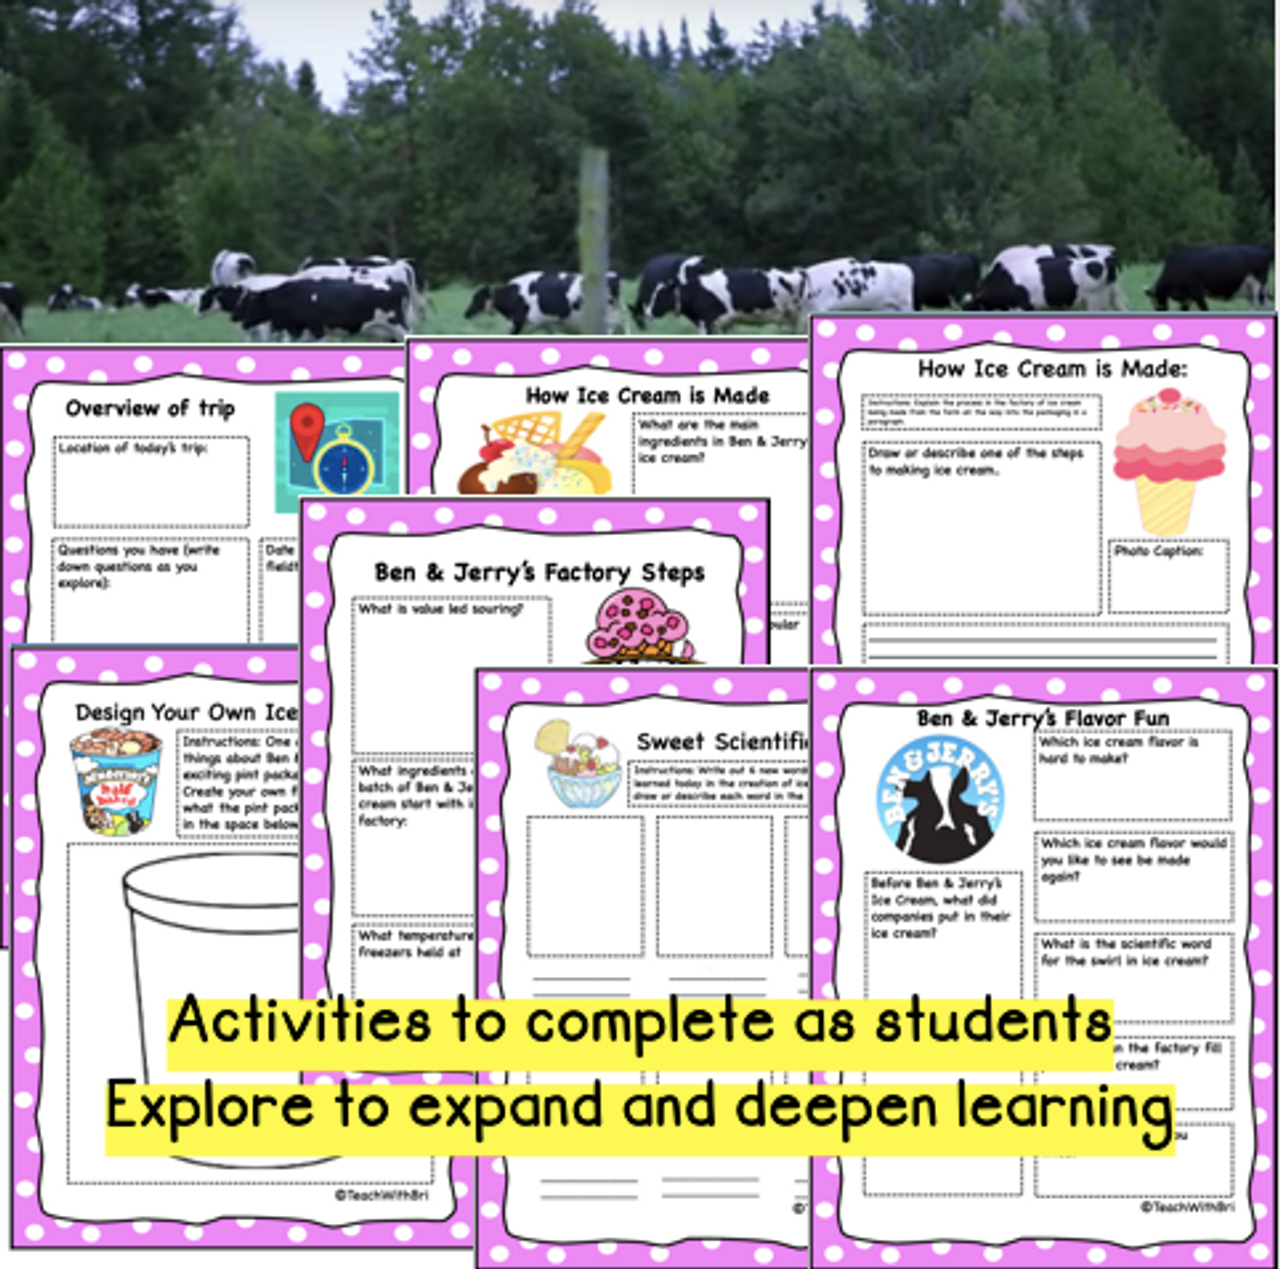 Google Version- Virtual Field Trip to the Ben & Jerry's Ice Cream Factory